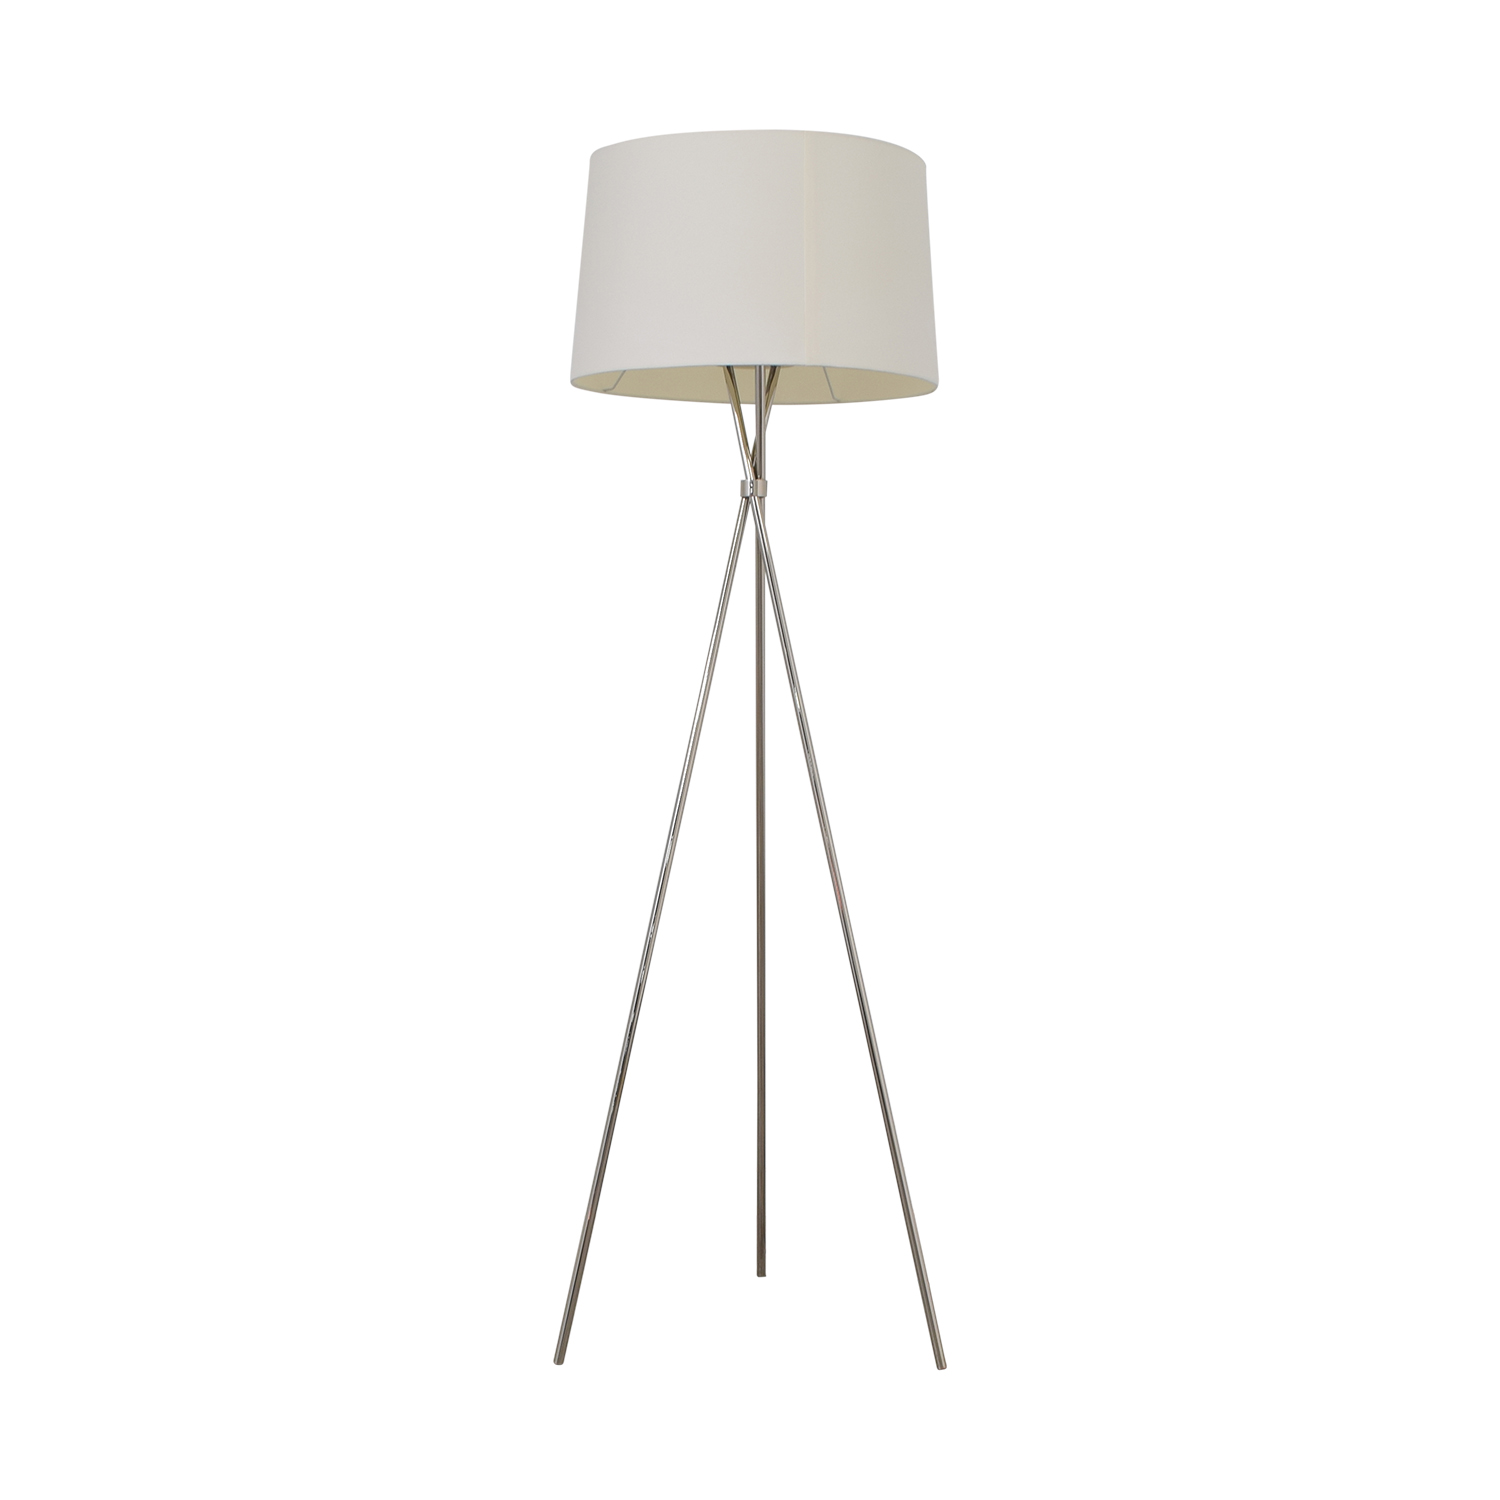 54 Off Design Within Reach Design Within Reach Tripod Floor Lamp